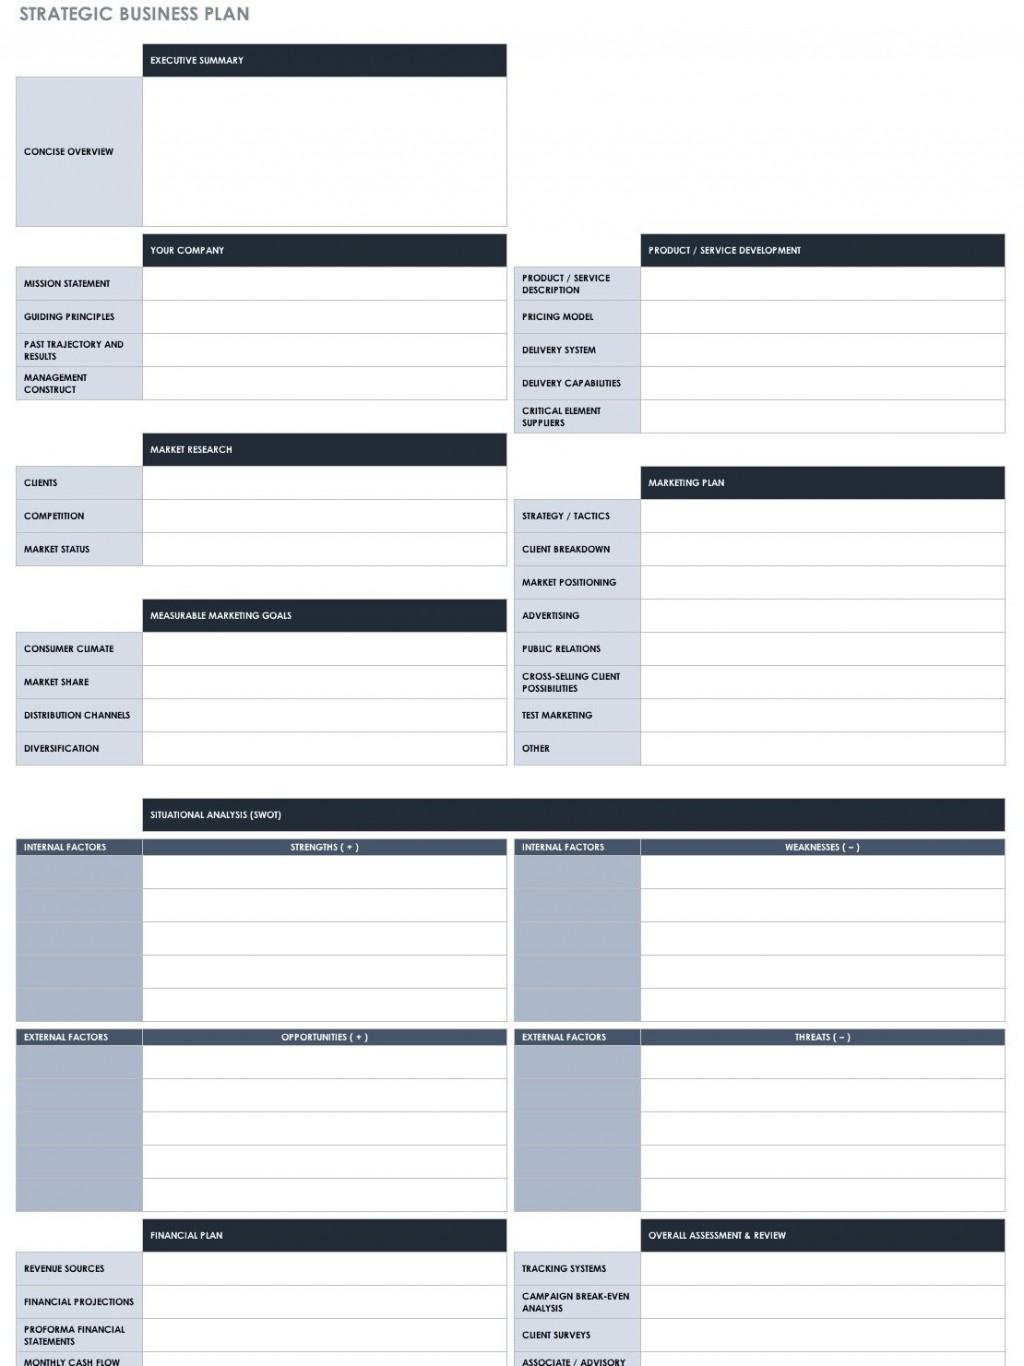 006 Breathtaking Strategic Plan Template Excel Picture  Action CommunicationLarge